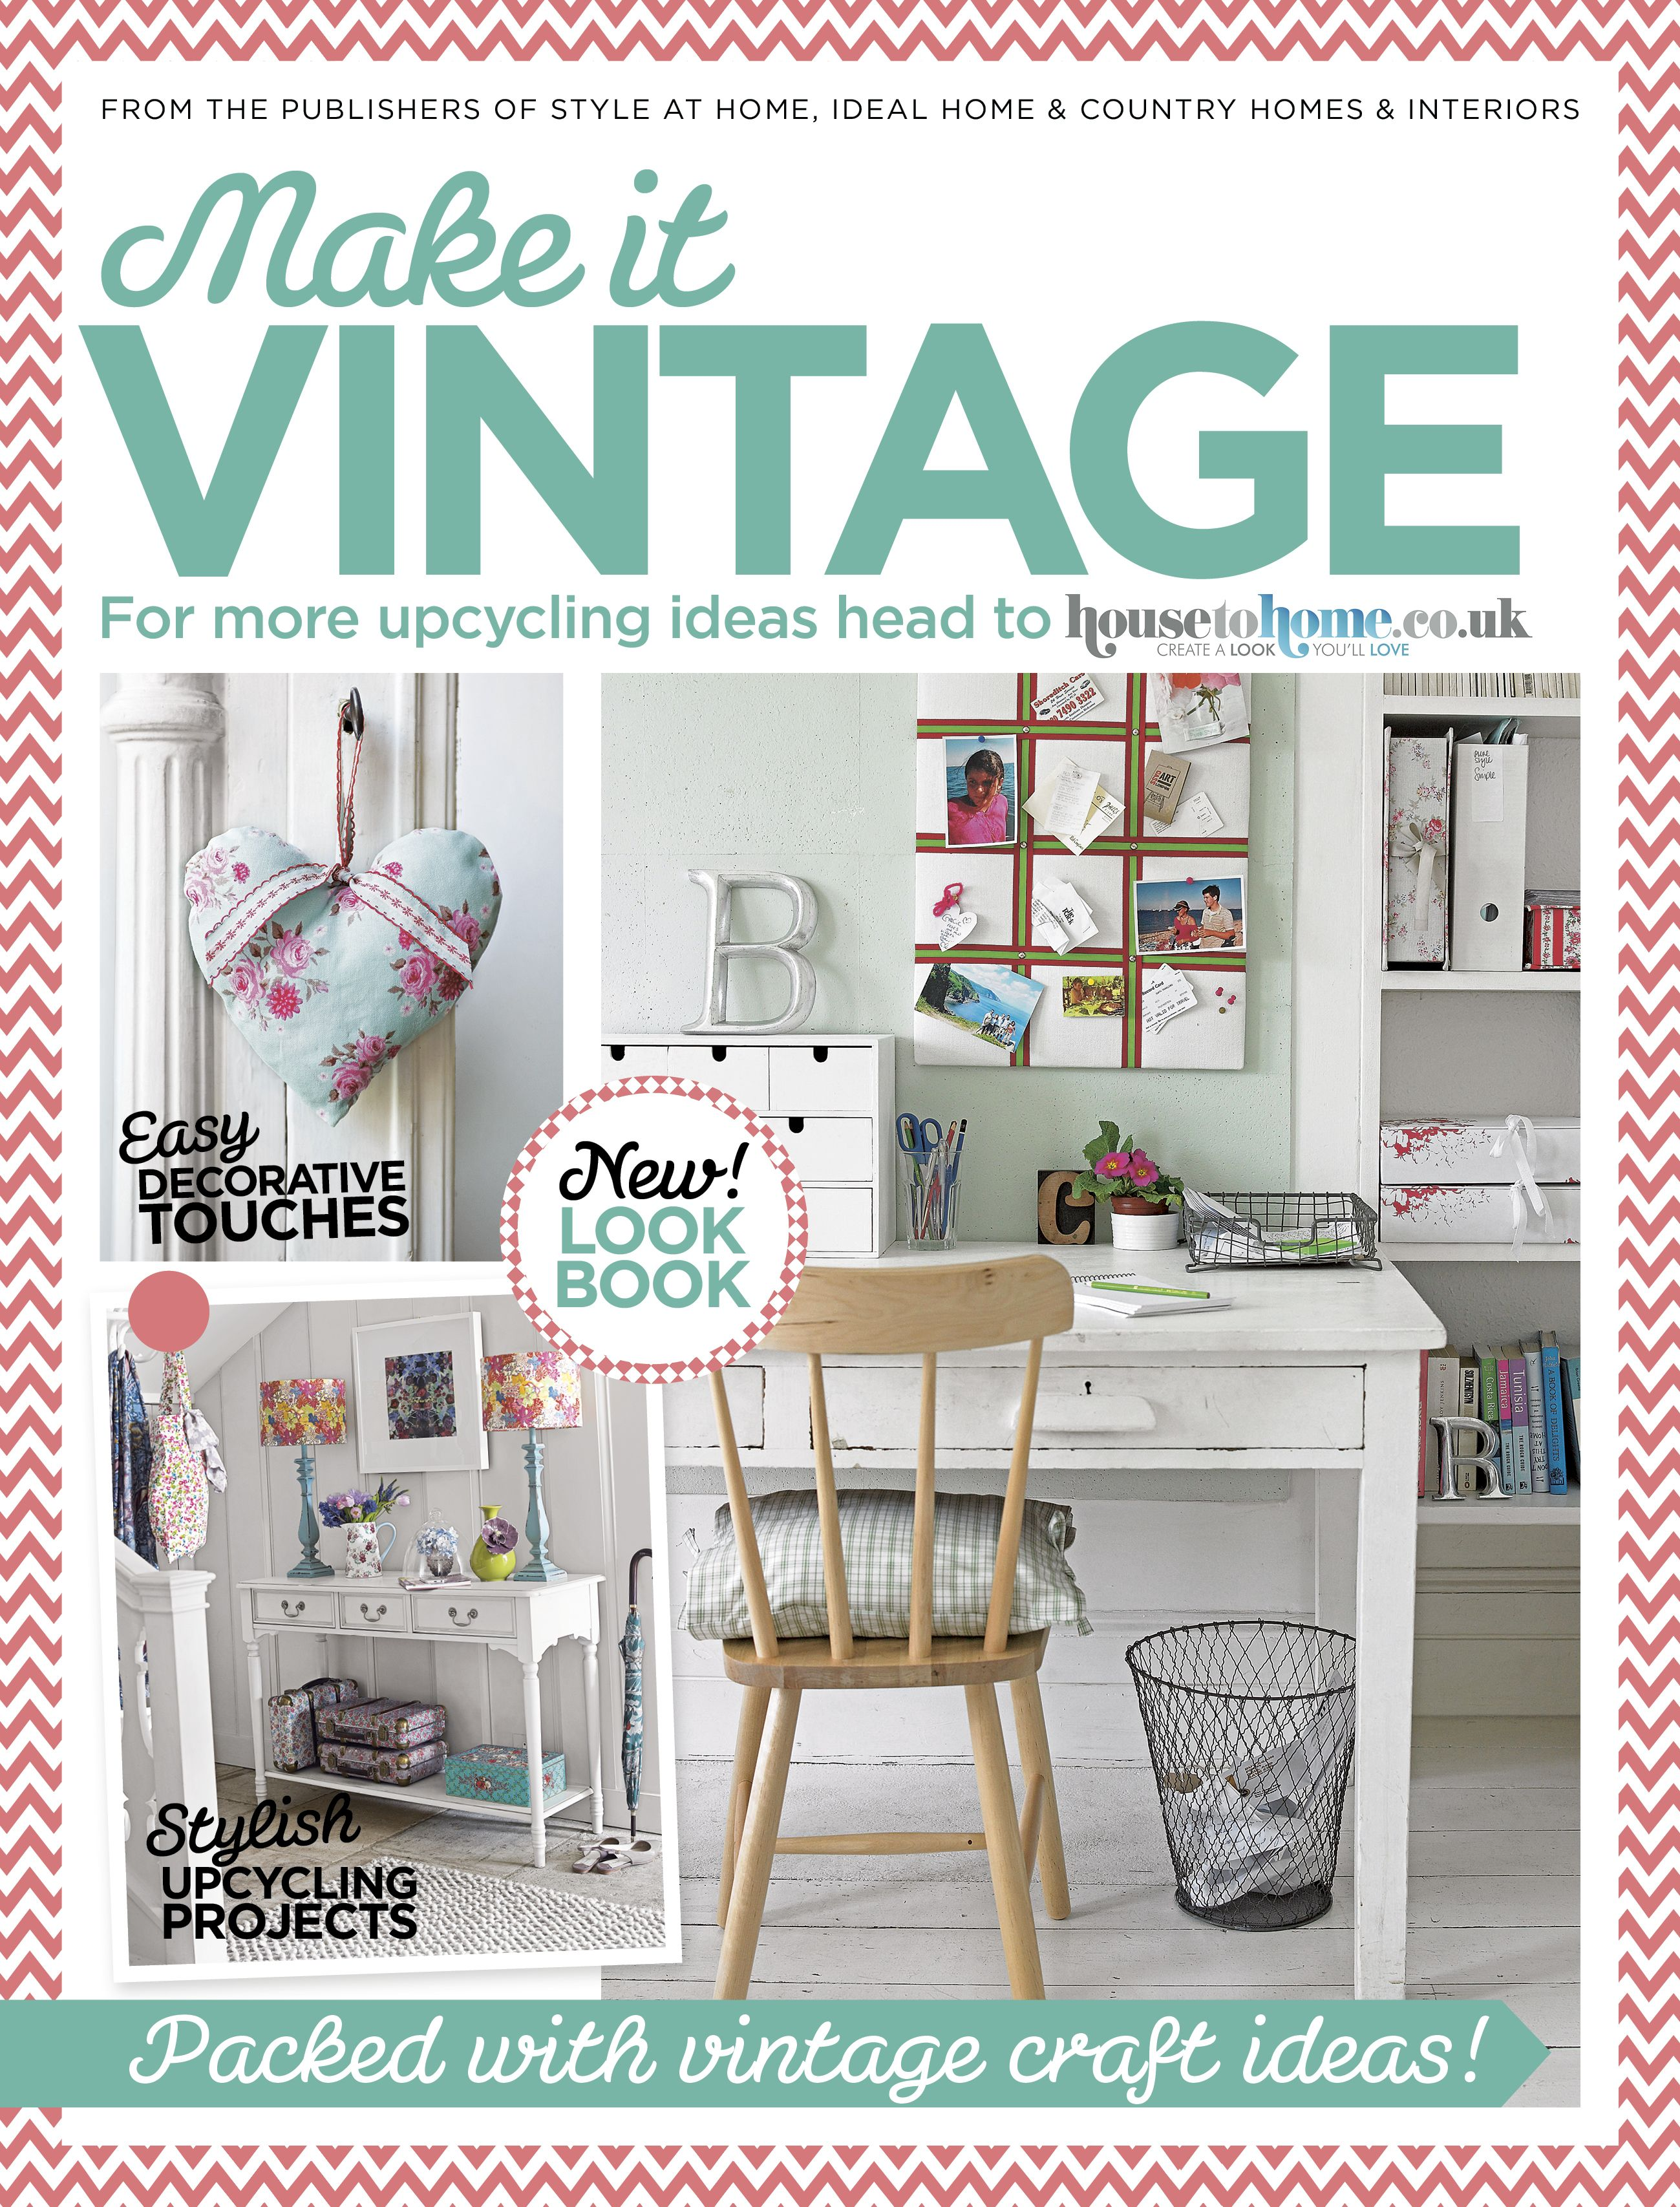 make it vintage is filled with craft and upcycling projects for you rh pinterest co uk